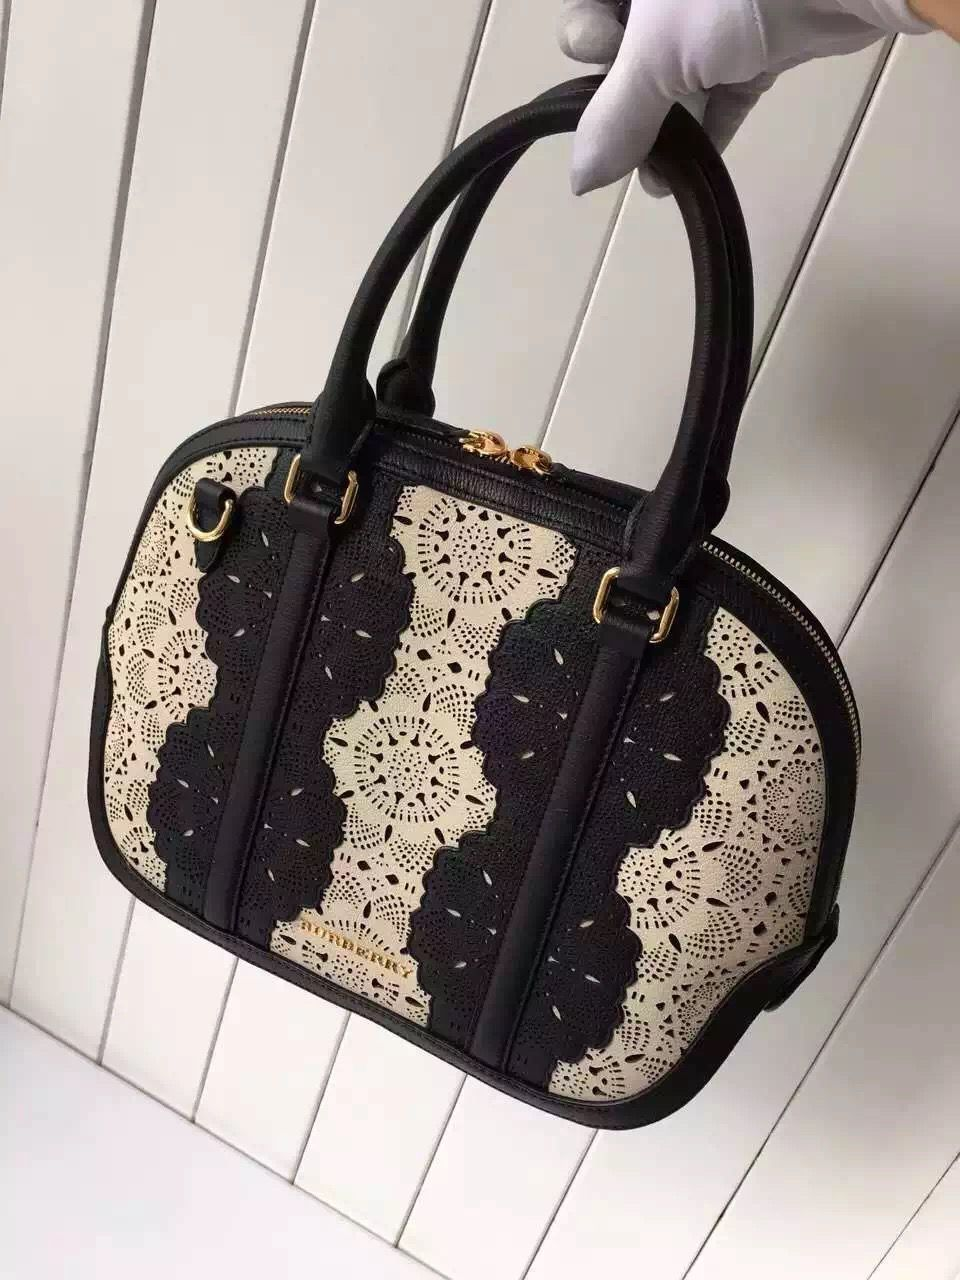 25d7bbad727 B Small Orchard Bowling Bag In Lace Leather White/Black S/S 2016 ...